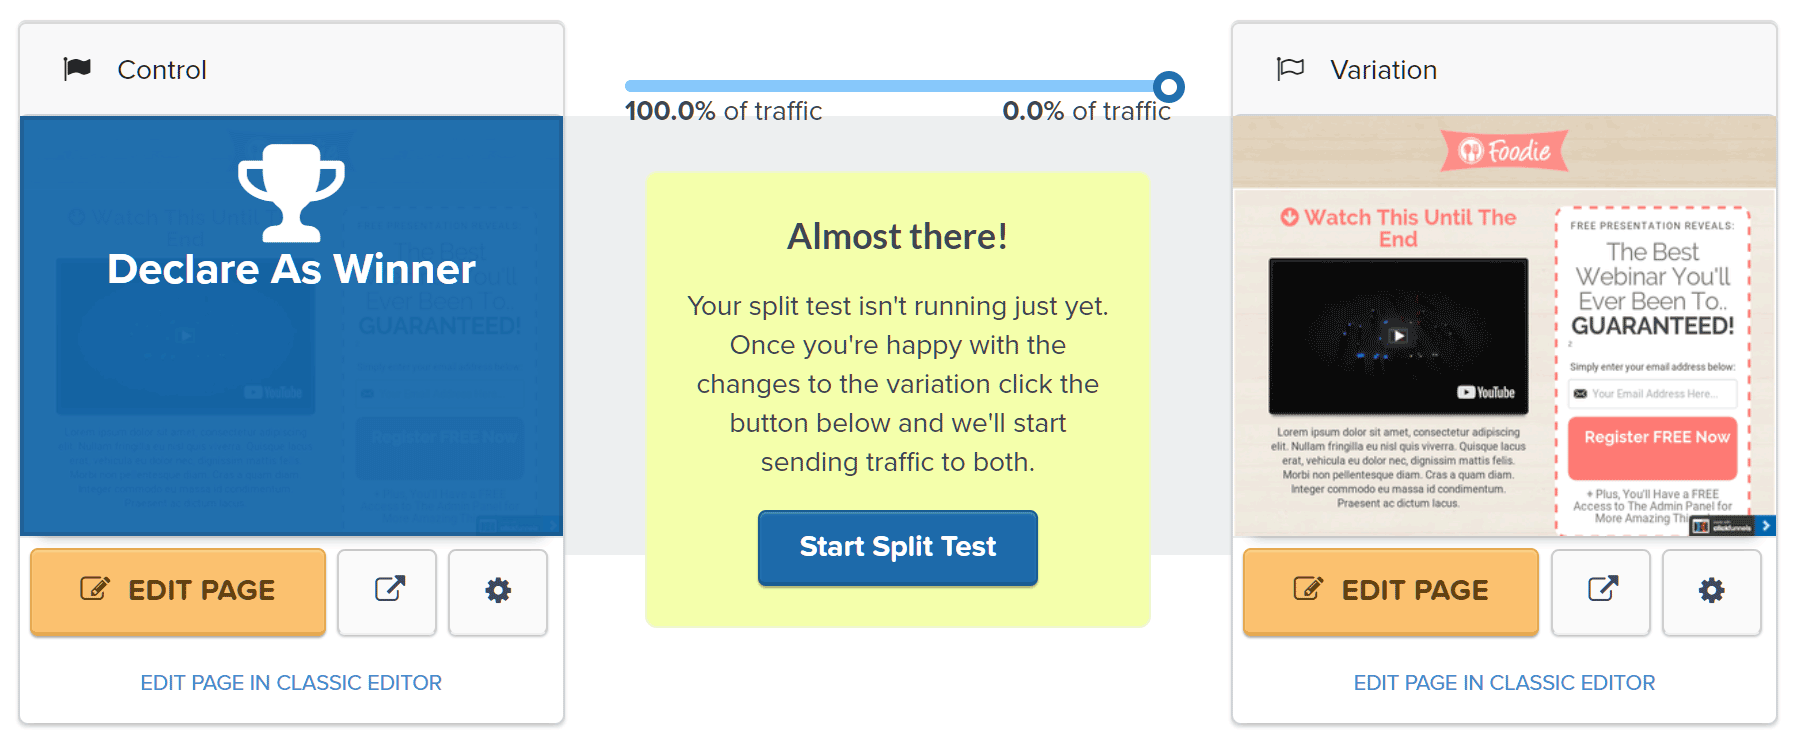 Optimizing pages with the split testing tool